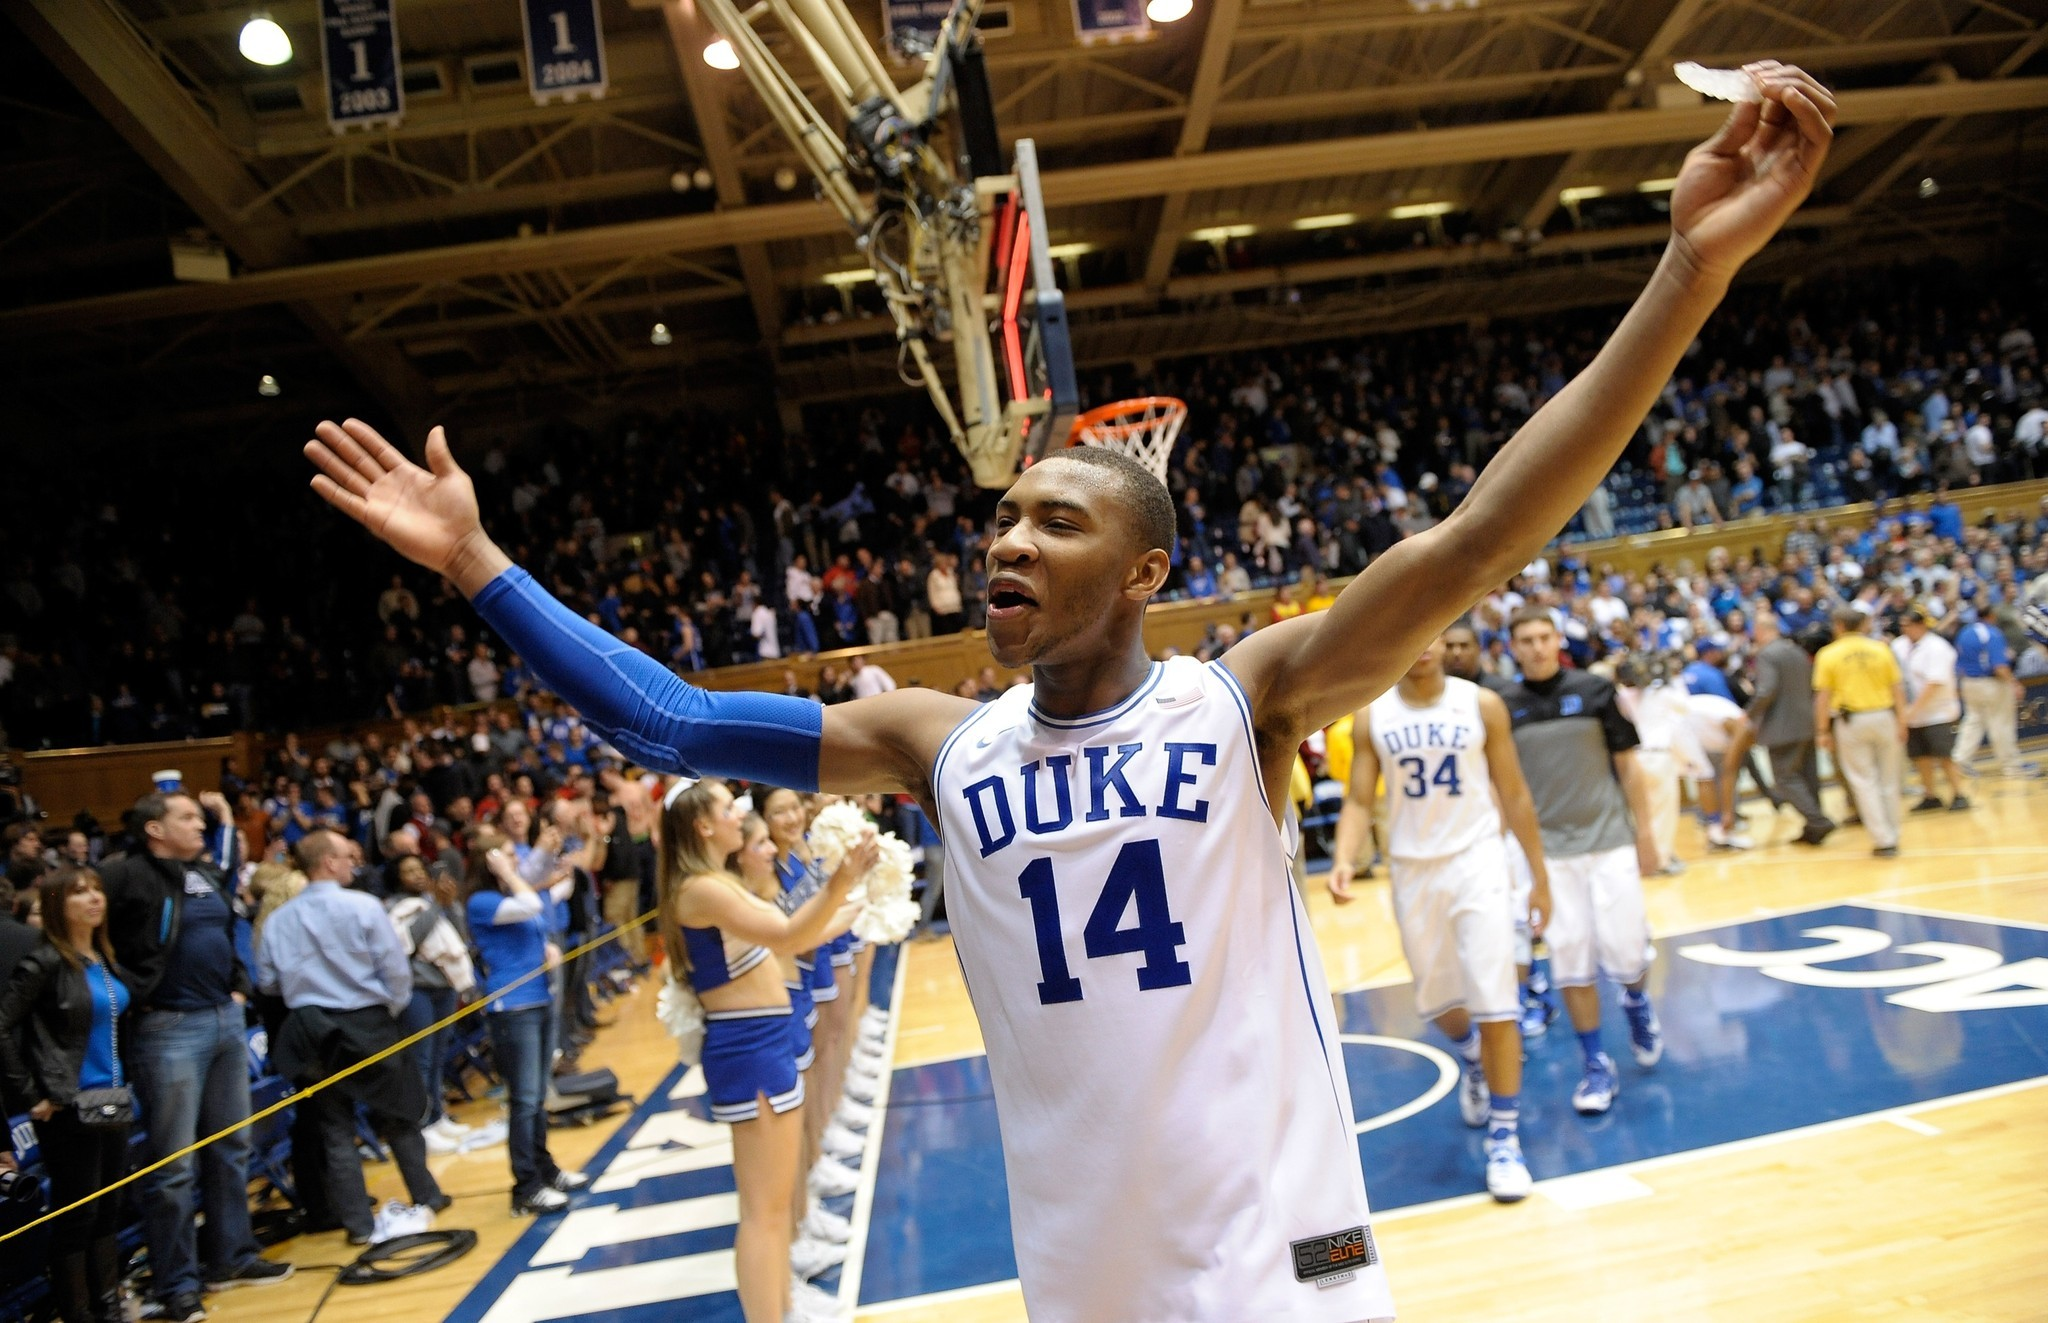 duke basketball - photo #30